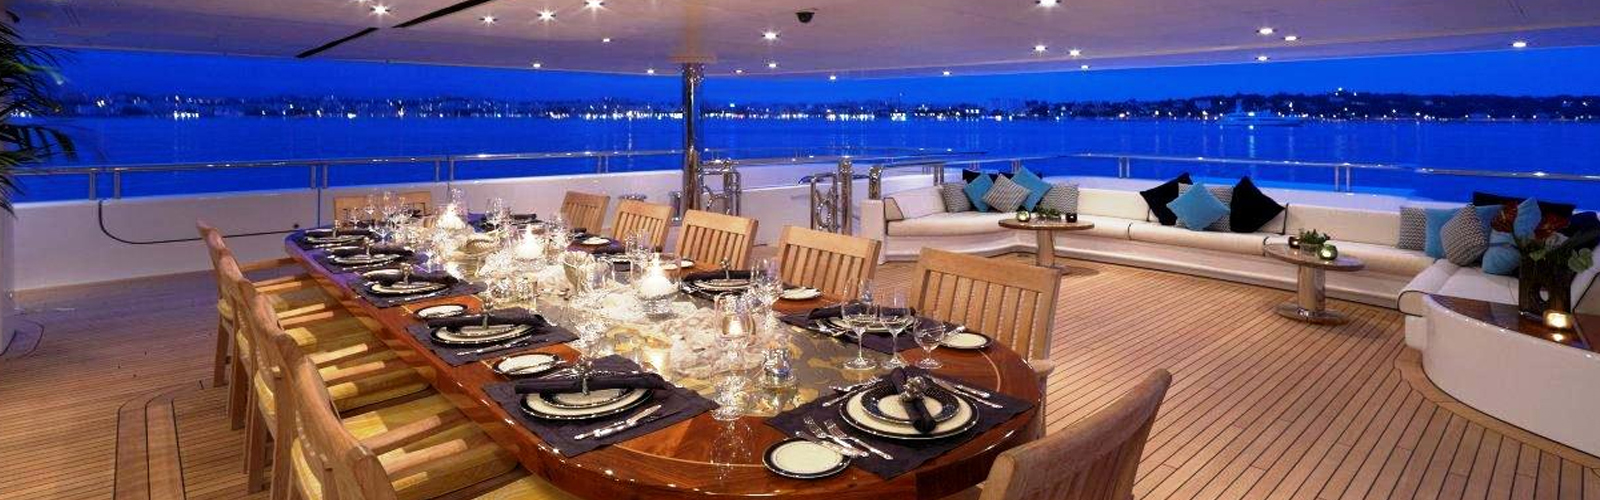 Superyacht Stewardess Interior course one week with Flying Fish